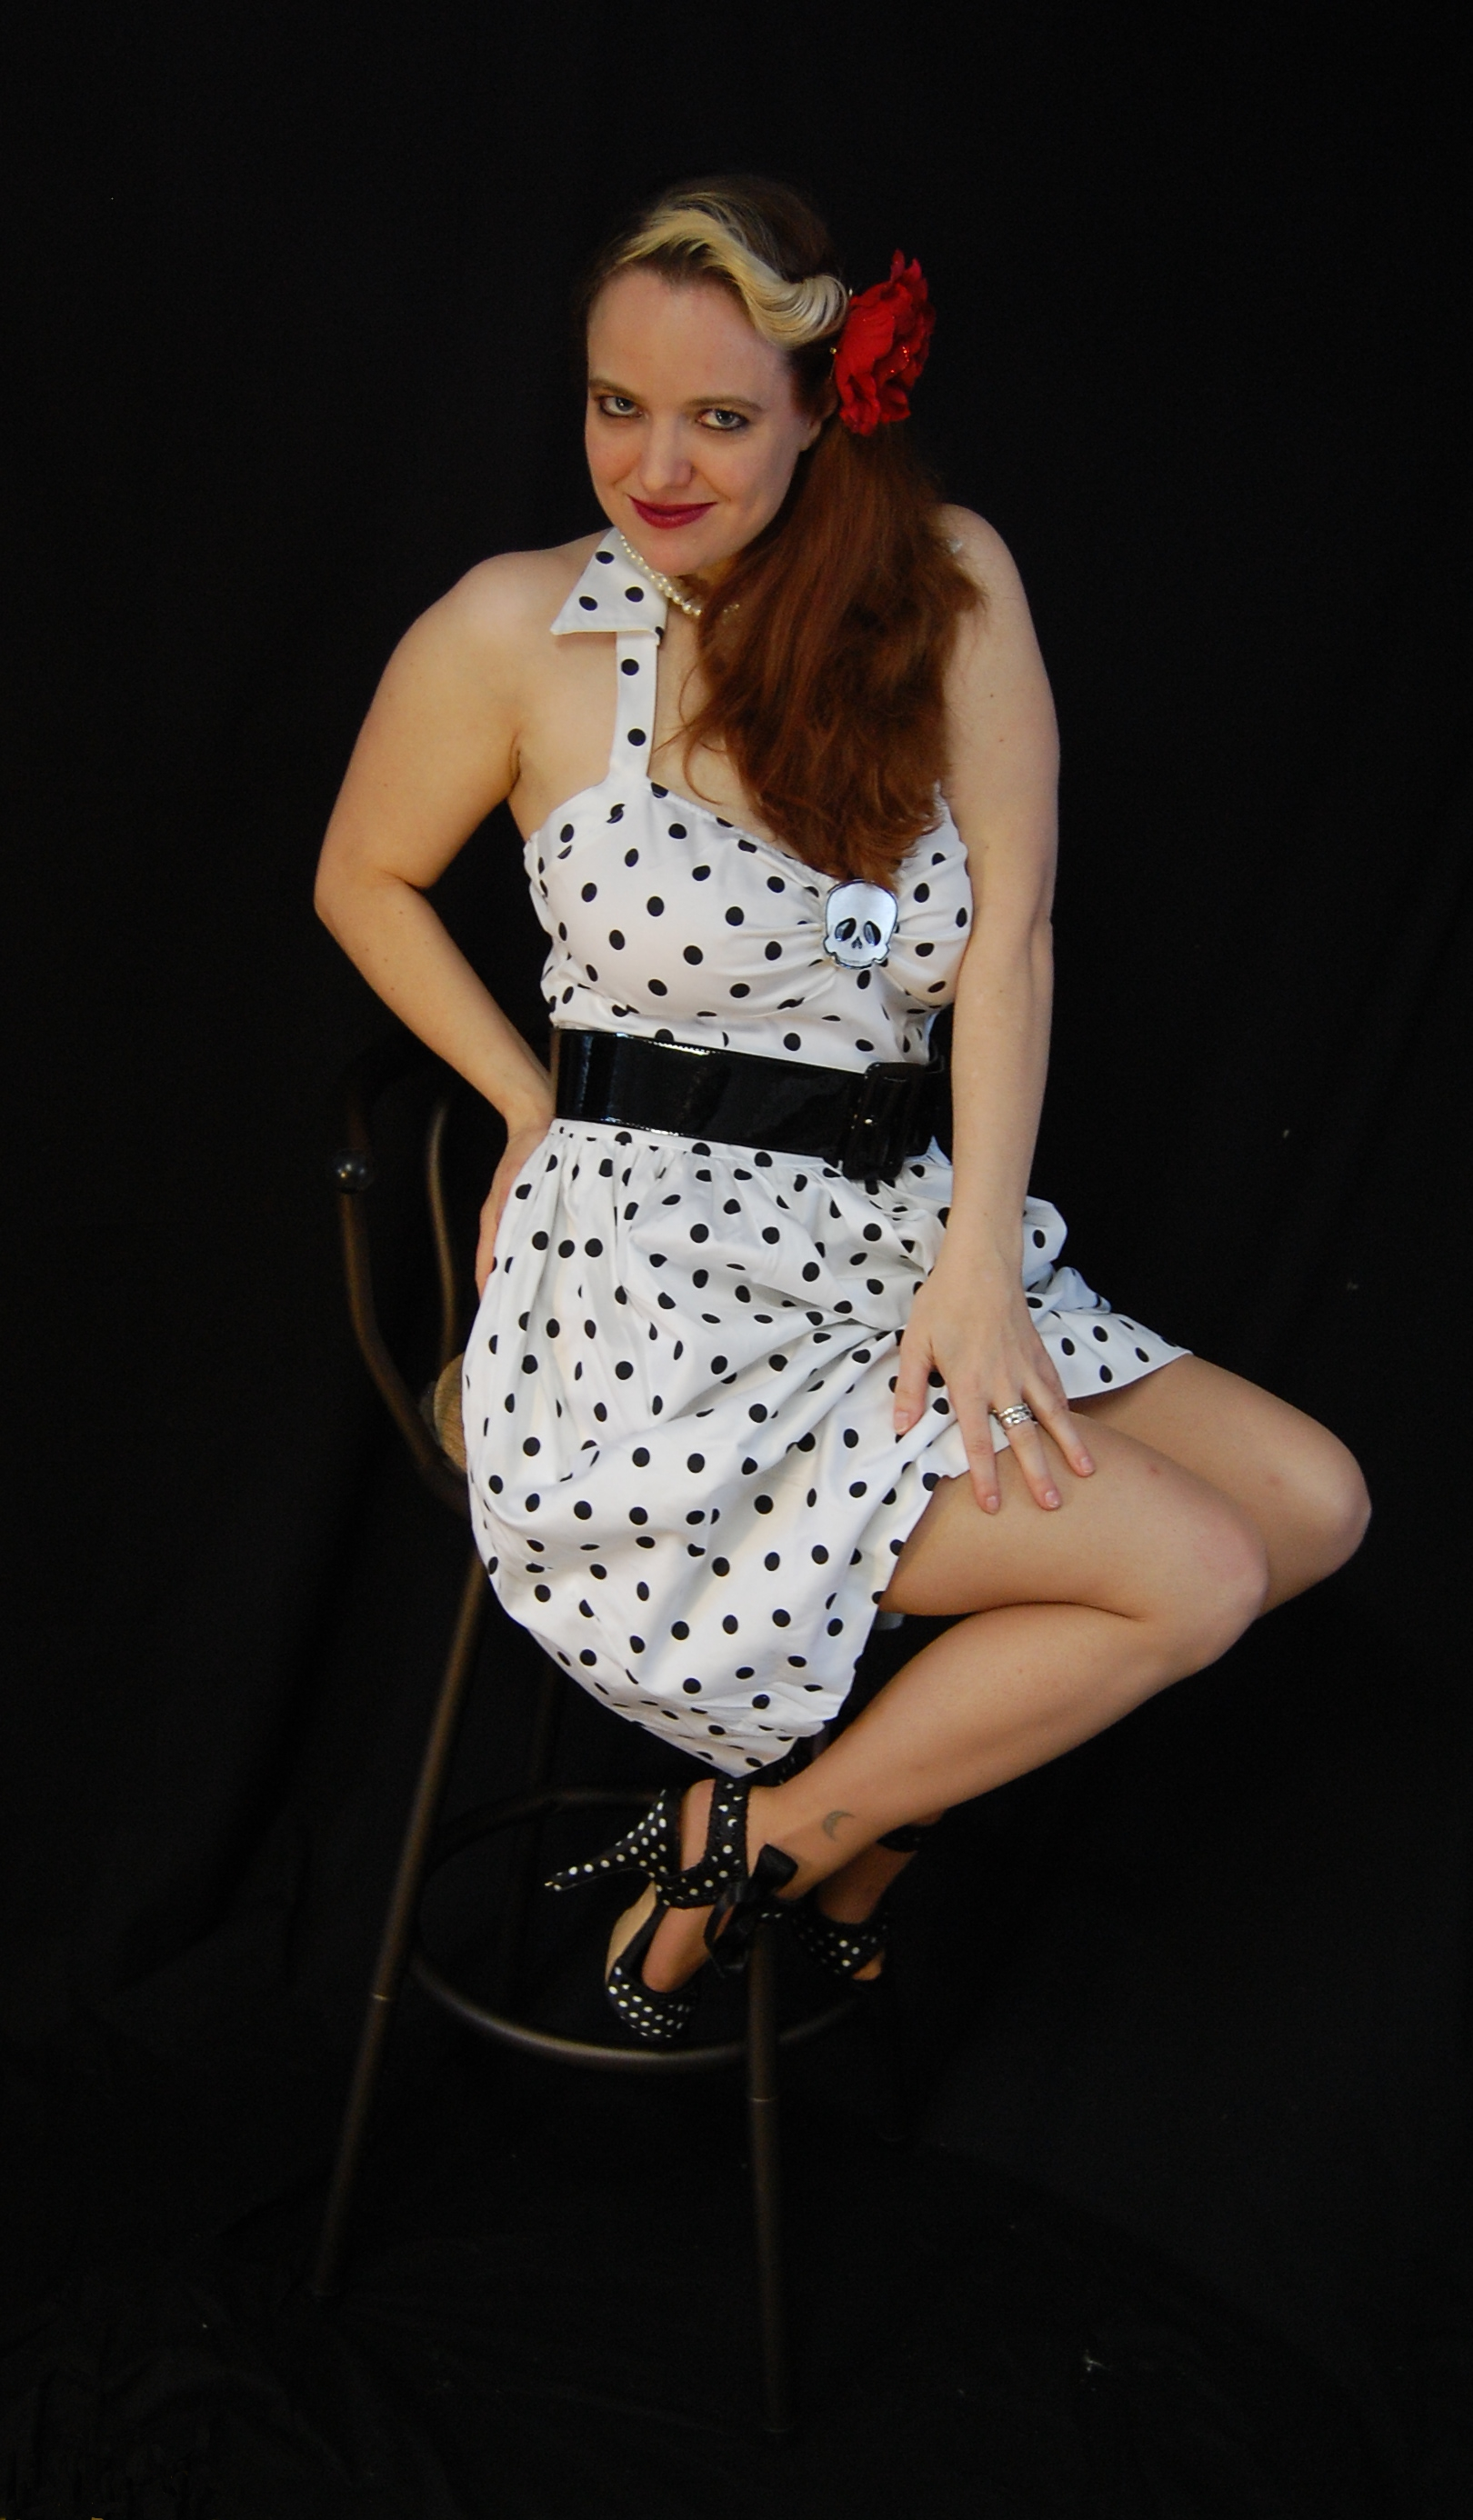 2010 Fife pinup white dress 0220